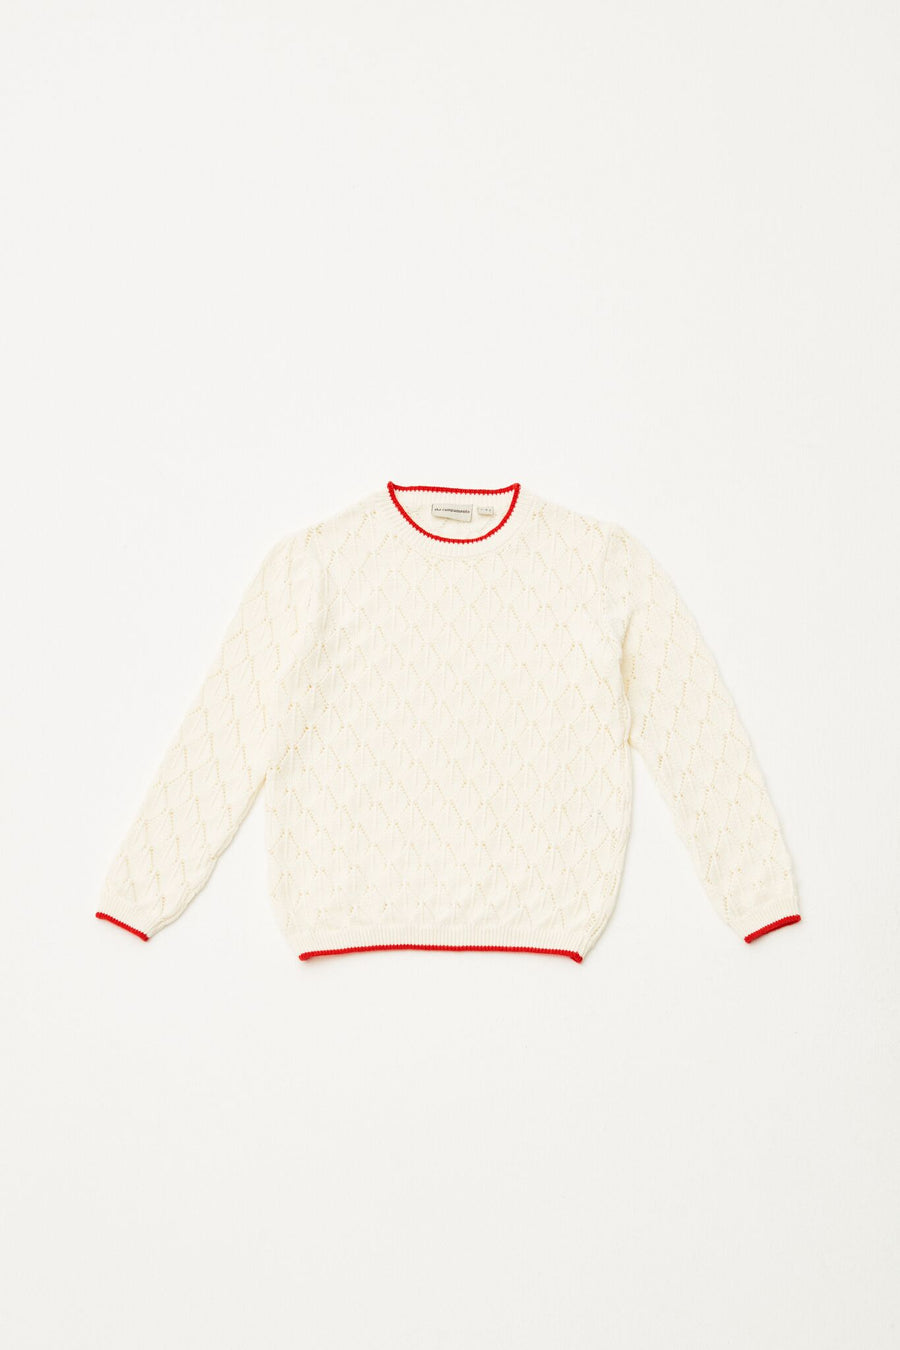 THE CAMPAMENTO OPEN KNITTED JUMPER